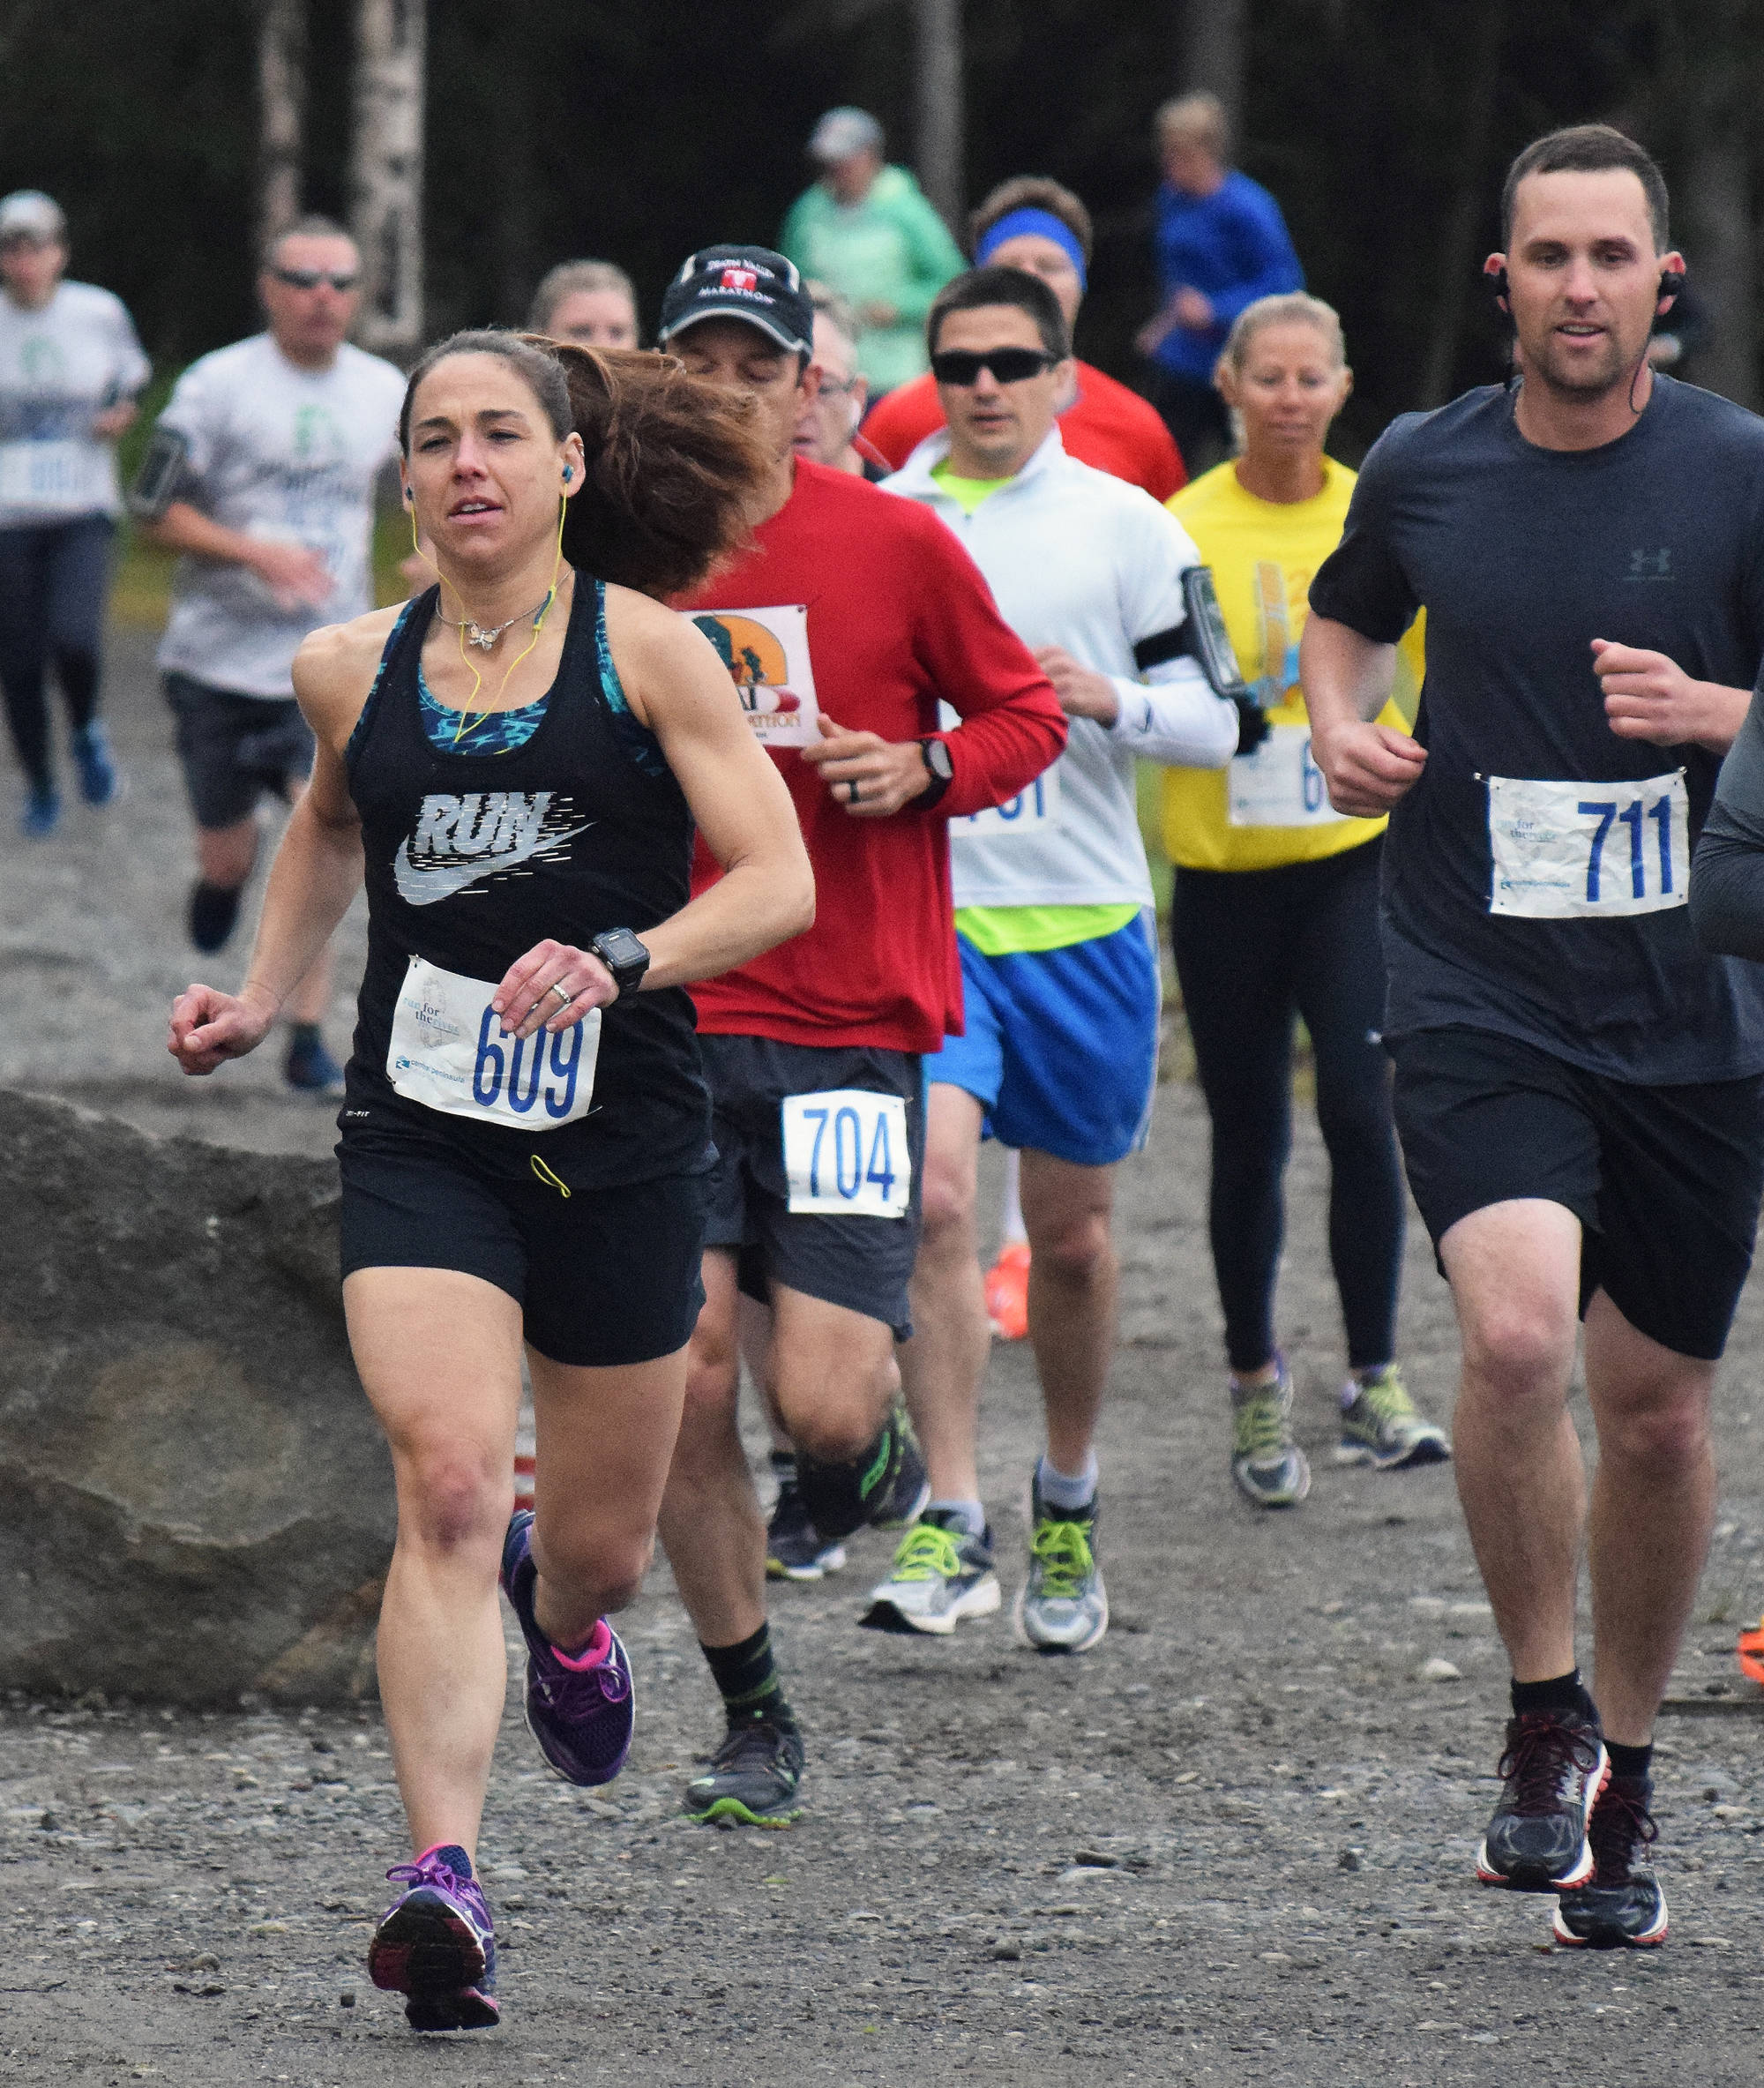 Women's Run for the River 10-mile runner-up Heather Moon (609) leads a pack of racers out onto the course Saturday morning in Soldotna, with women's 10-mile race winner Bethany Tietz (in yellow shirt) following closely. (Photo by Joey Klecka/Peninsula Clarion)